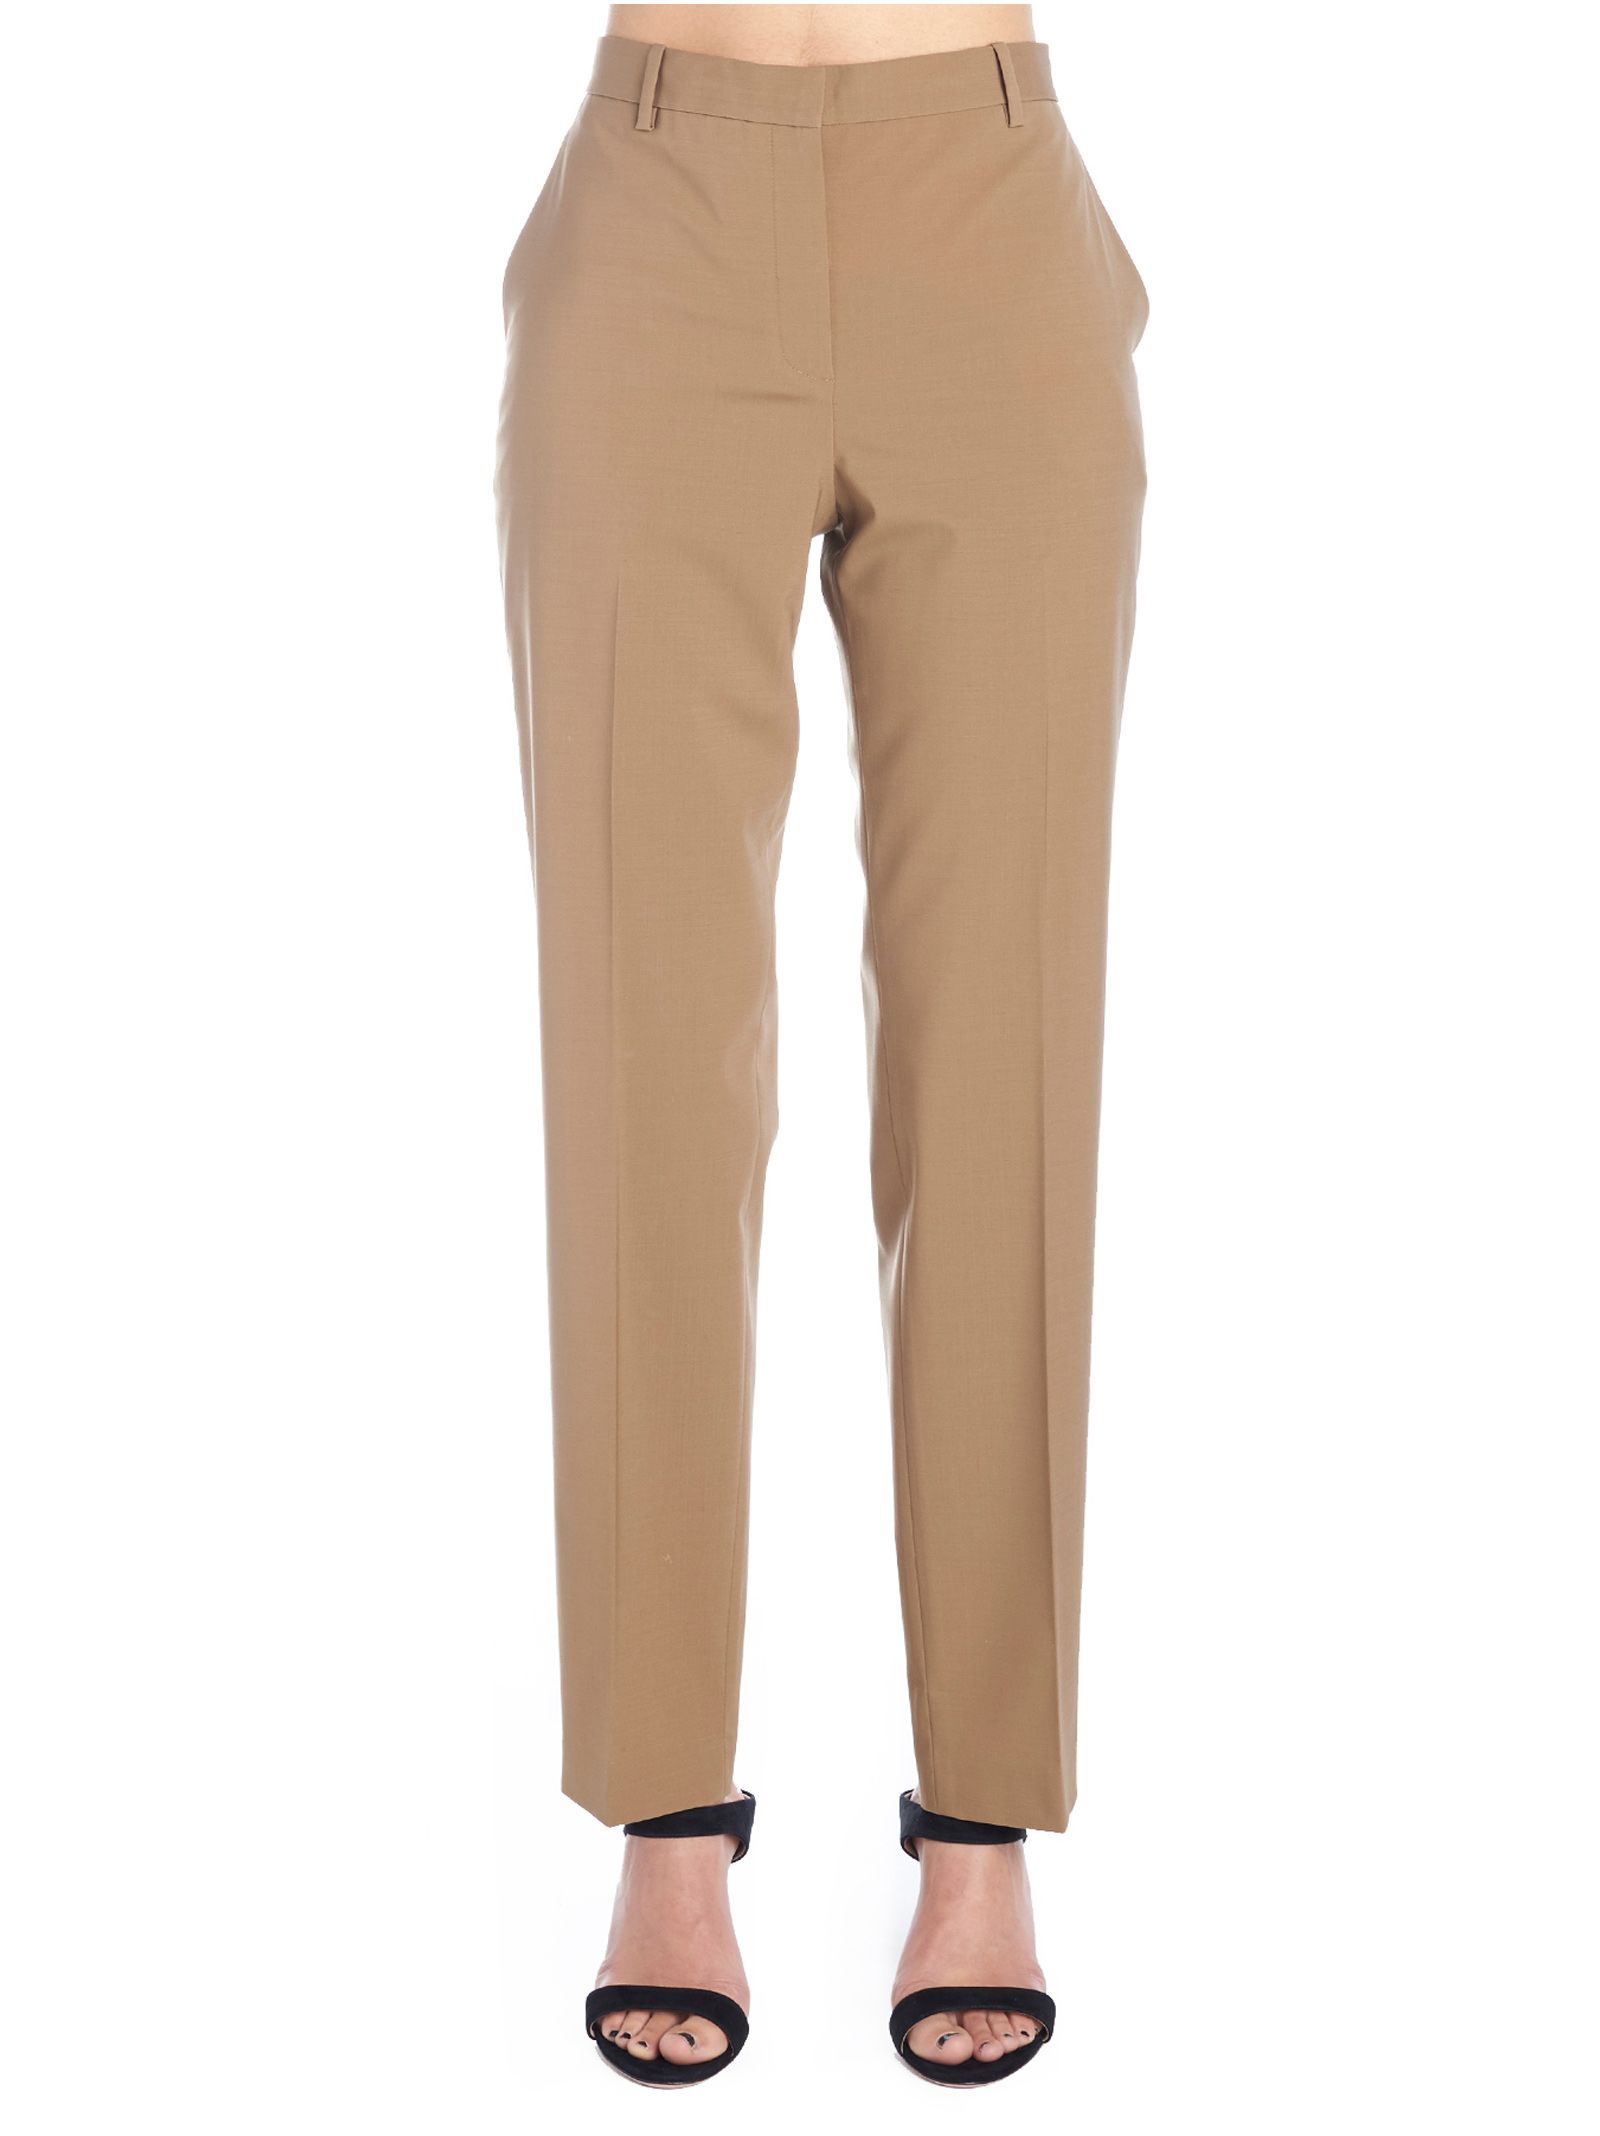 'Tailor Trousers' Pants in Brown